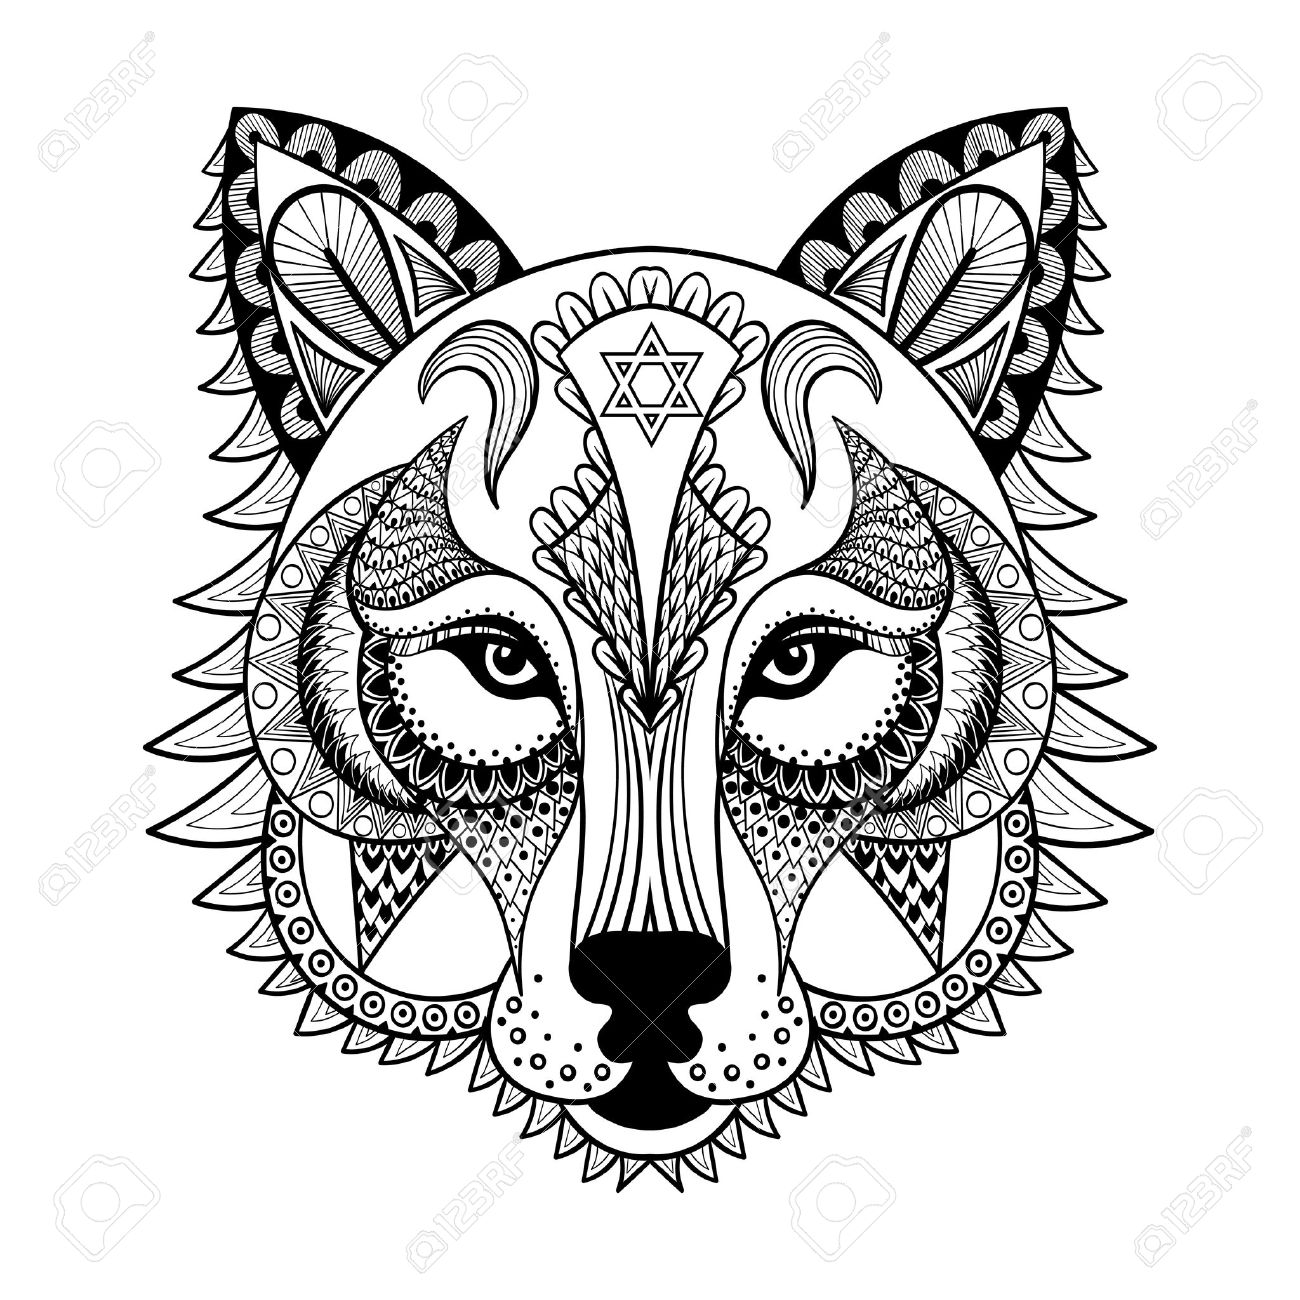 1300x1300 Fundamentals Adult Coloring Pages Of Wolves Ha